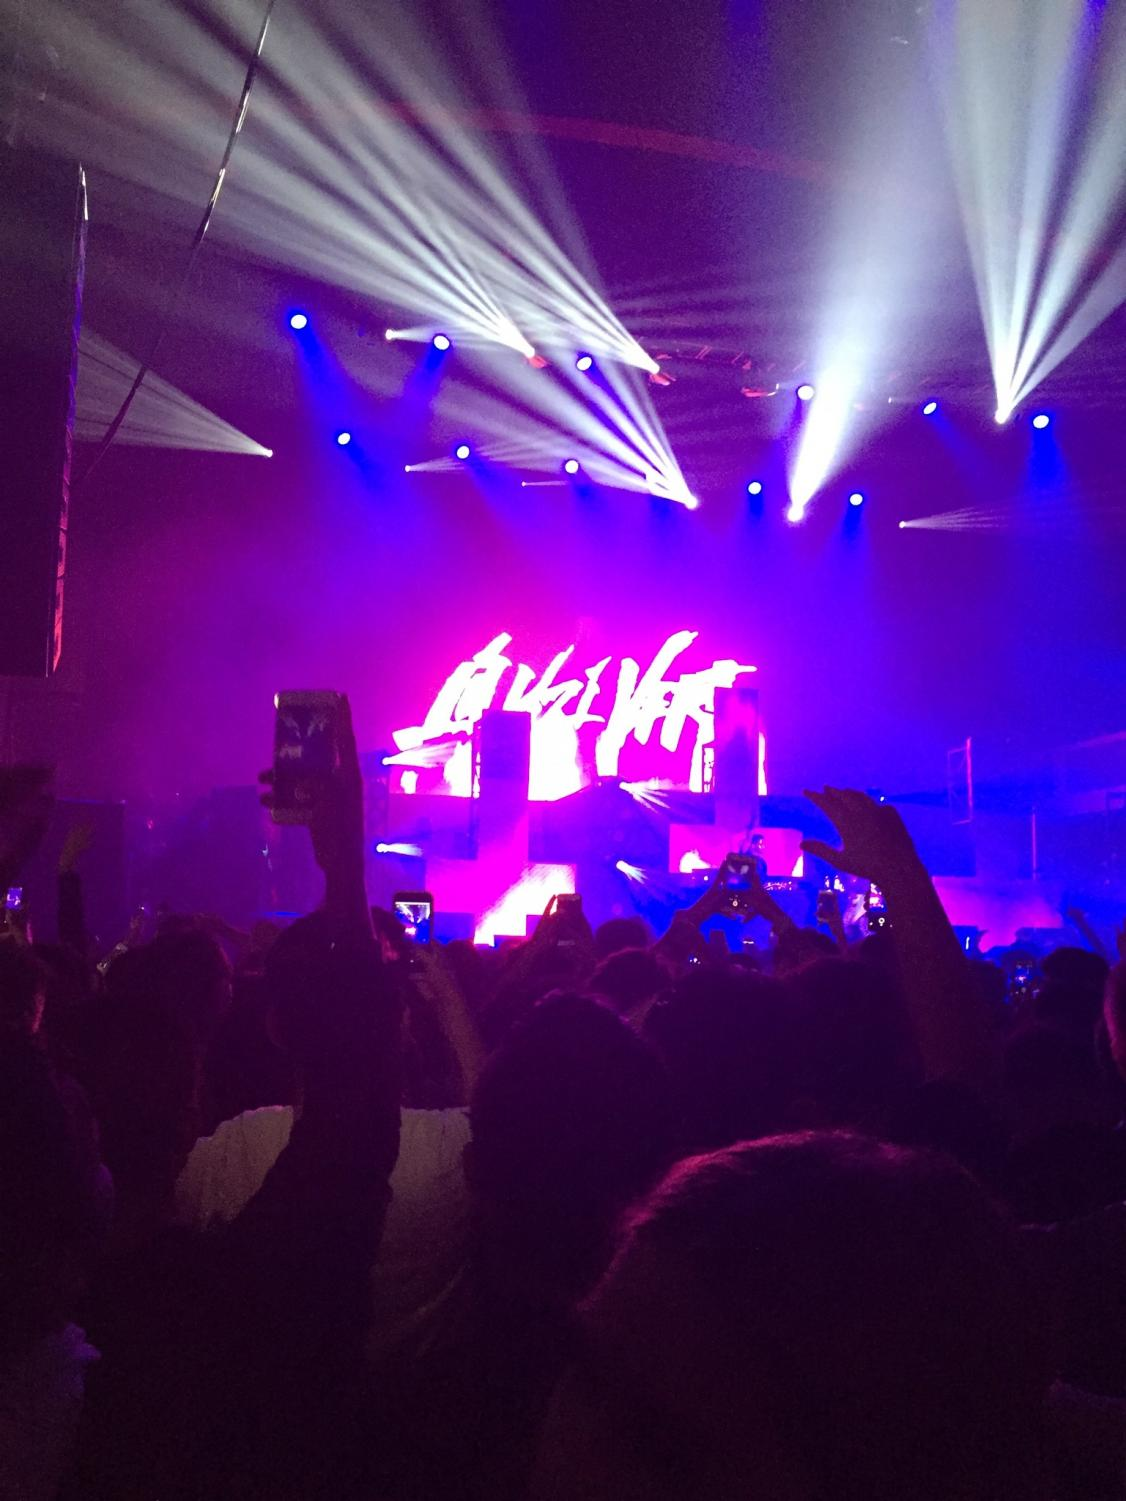 Lil Uzi Vert concert on Friday Feb. 2, at the Shrine Expo Hall near USC.  Many people were recording and taking pictures on their phones.